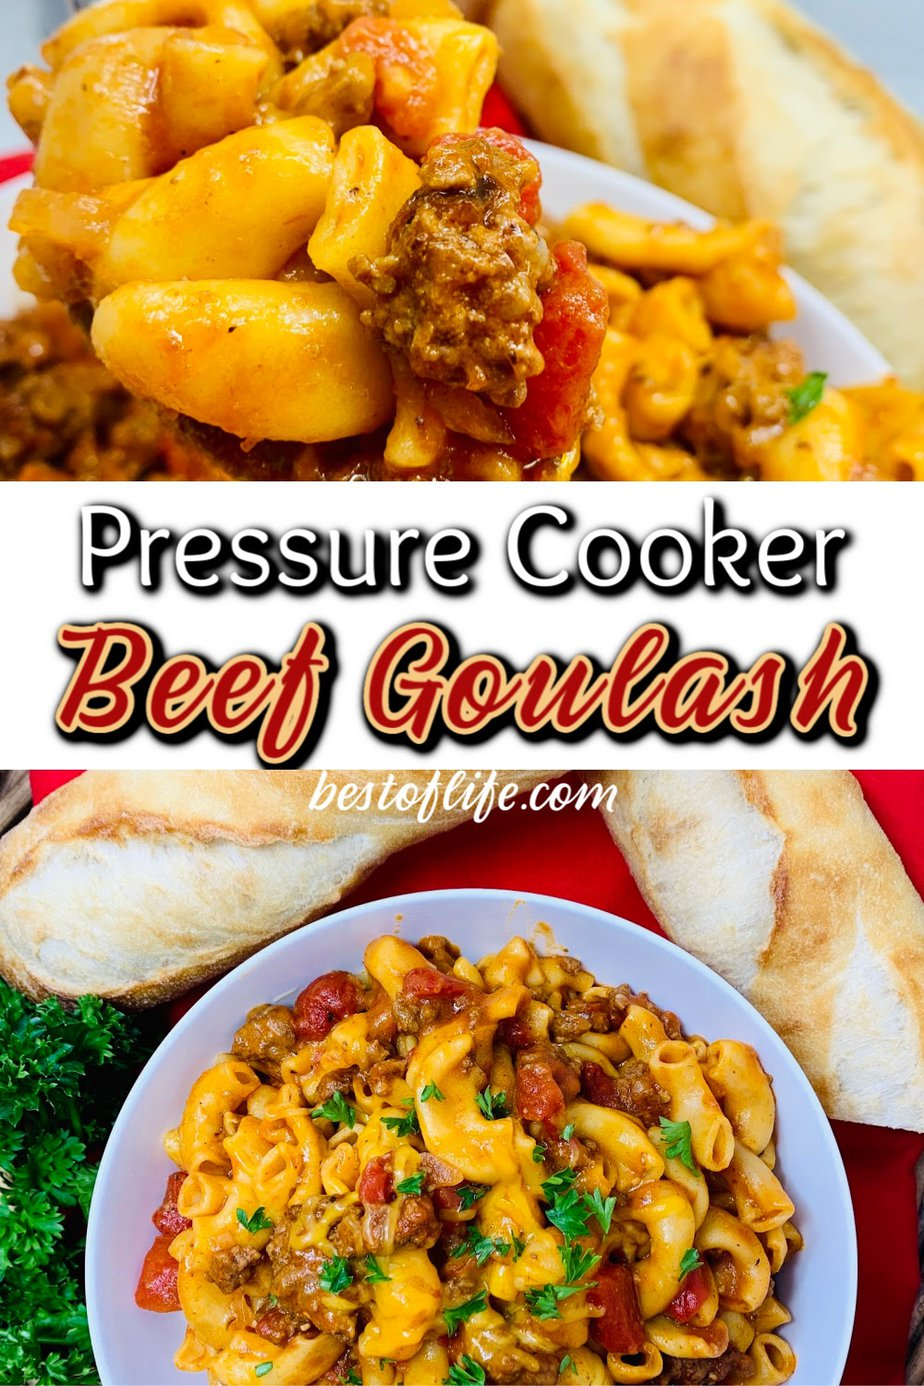 Making a pressure cooker beef goulash recipe is an easy way to enjoy a family dinner that is full of flavor and requires minimal meal prep time. Instant Pot Beef Recipe | Instant Pot Hamburger Meat Recipes | Pressure Cooker Recipes with Beef | Instant Pot Goulash Recipe | Easy Family Dinner Recipes | Instant Pot Dinner Recipes #instantpot #beef via @thebestoflife